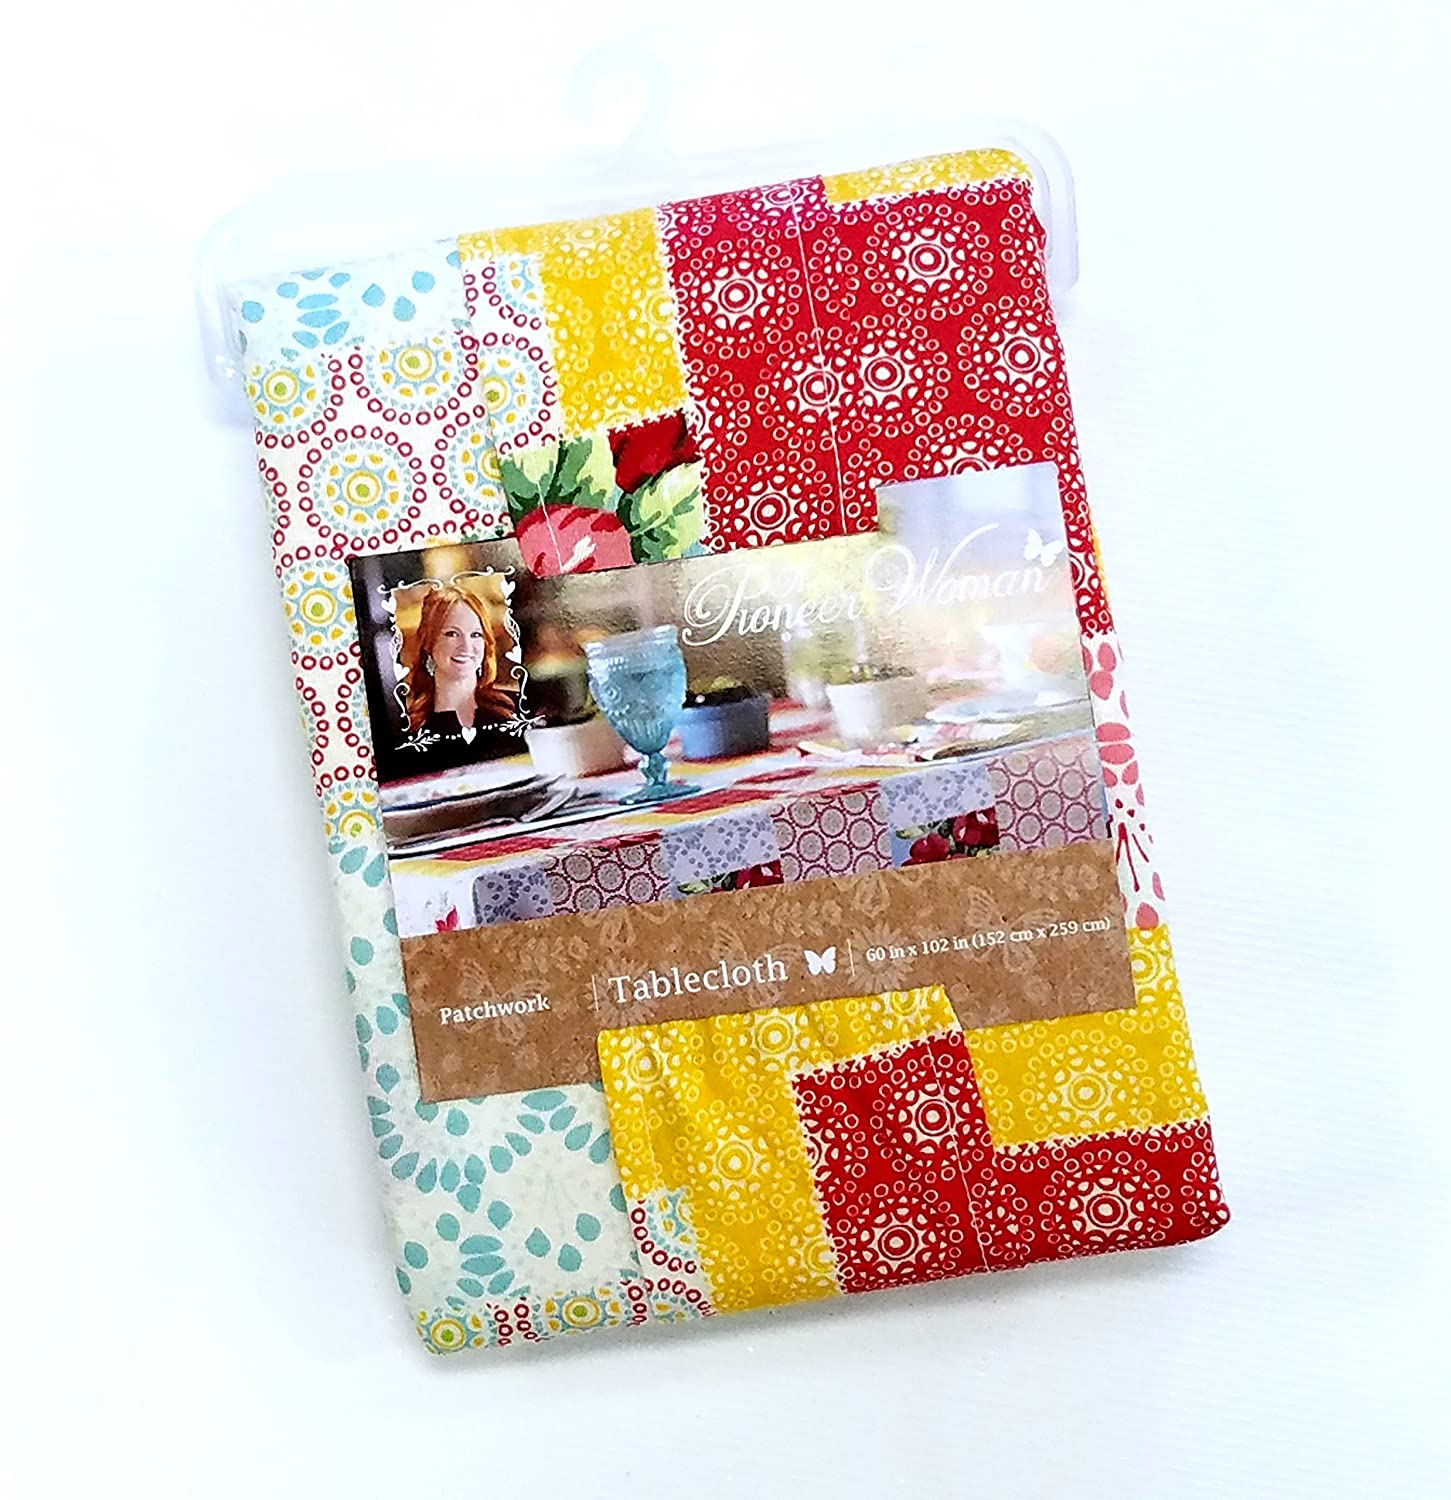 Amazon Pioneer Woman Tablecloth Patchwork 60 X 102 Vintage